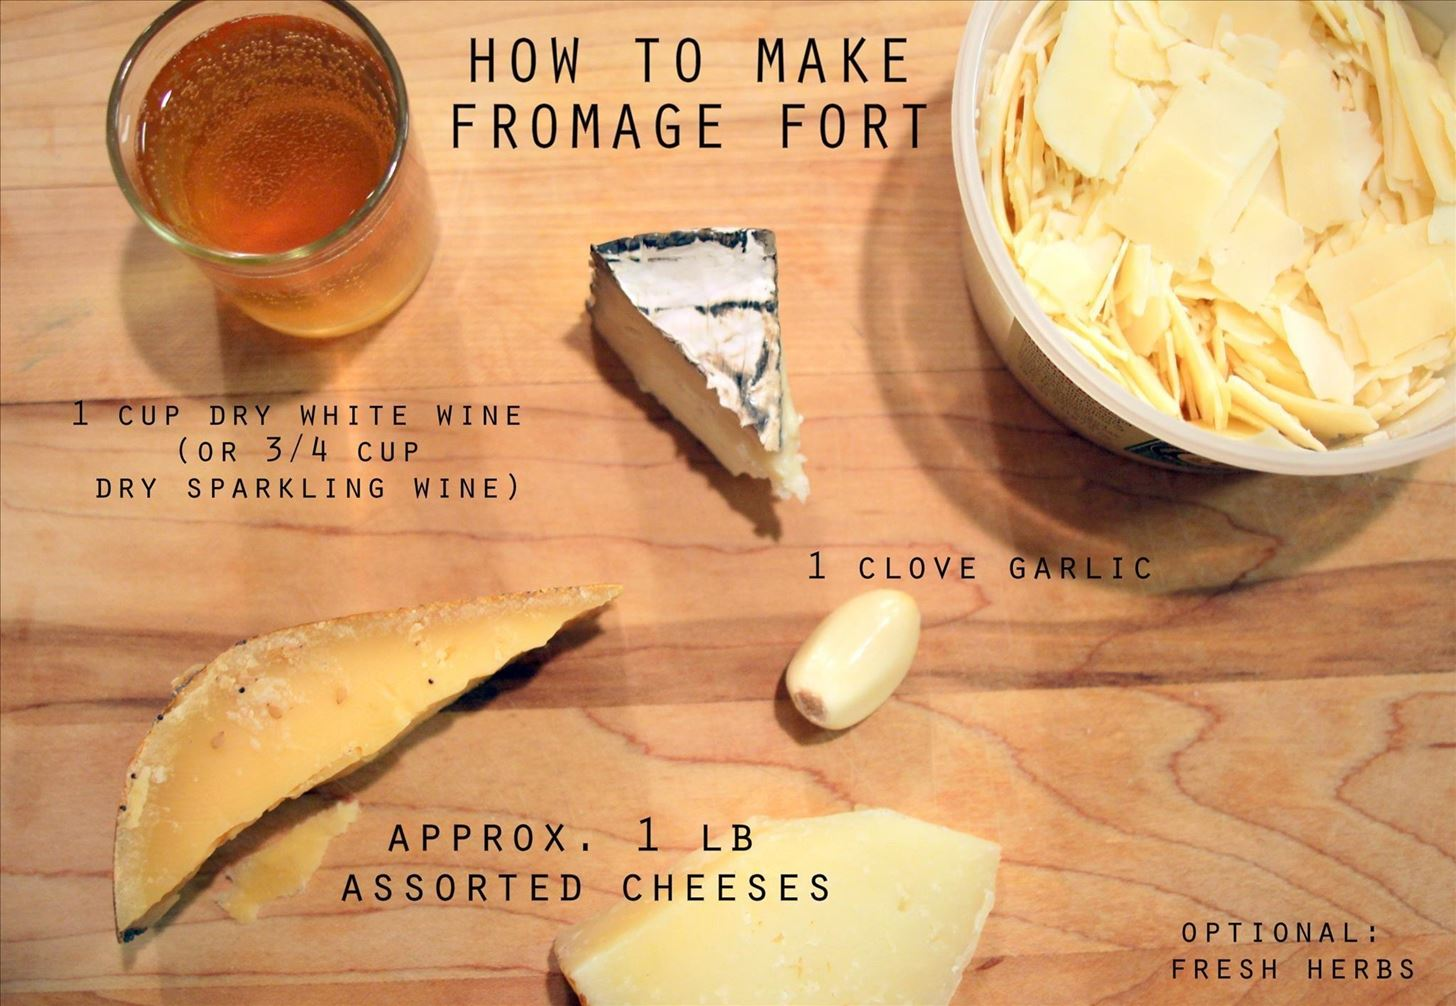 Transform Leftover Cheese & Wine into an Amazing French Dip